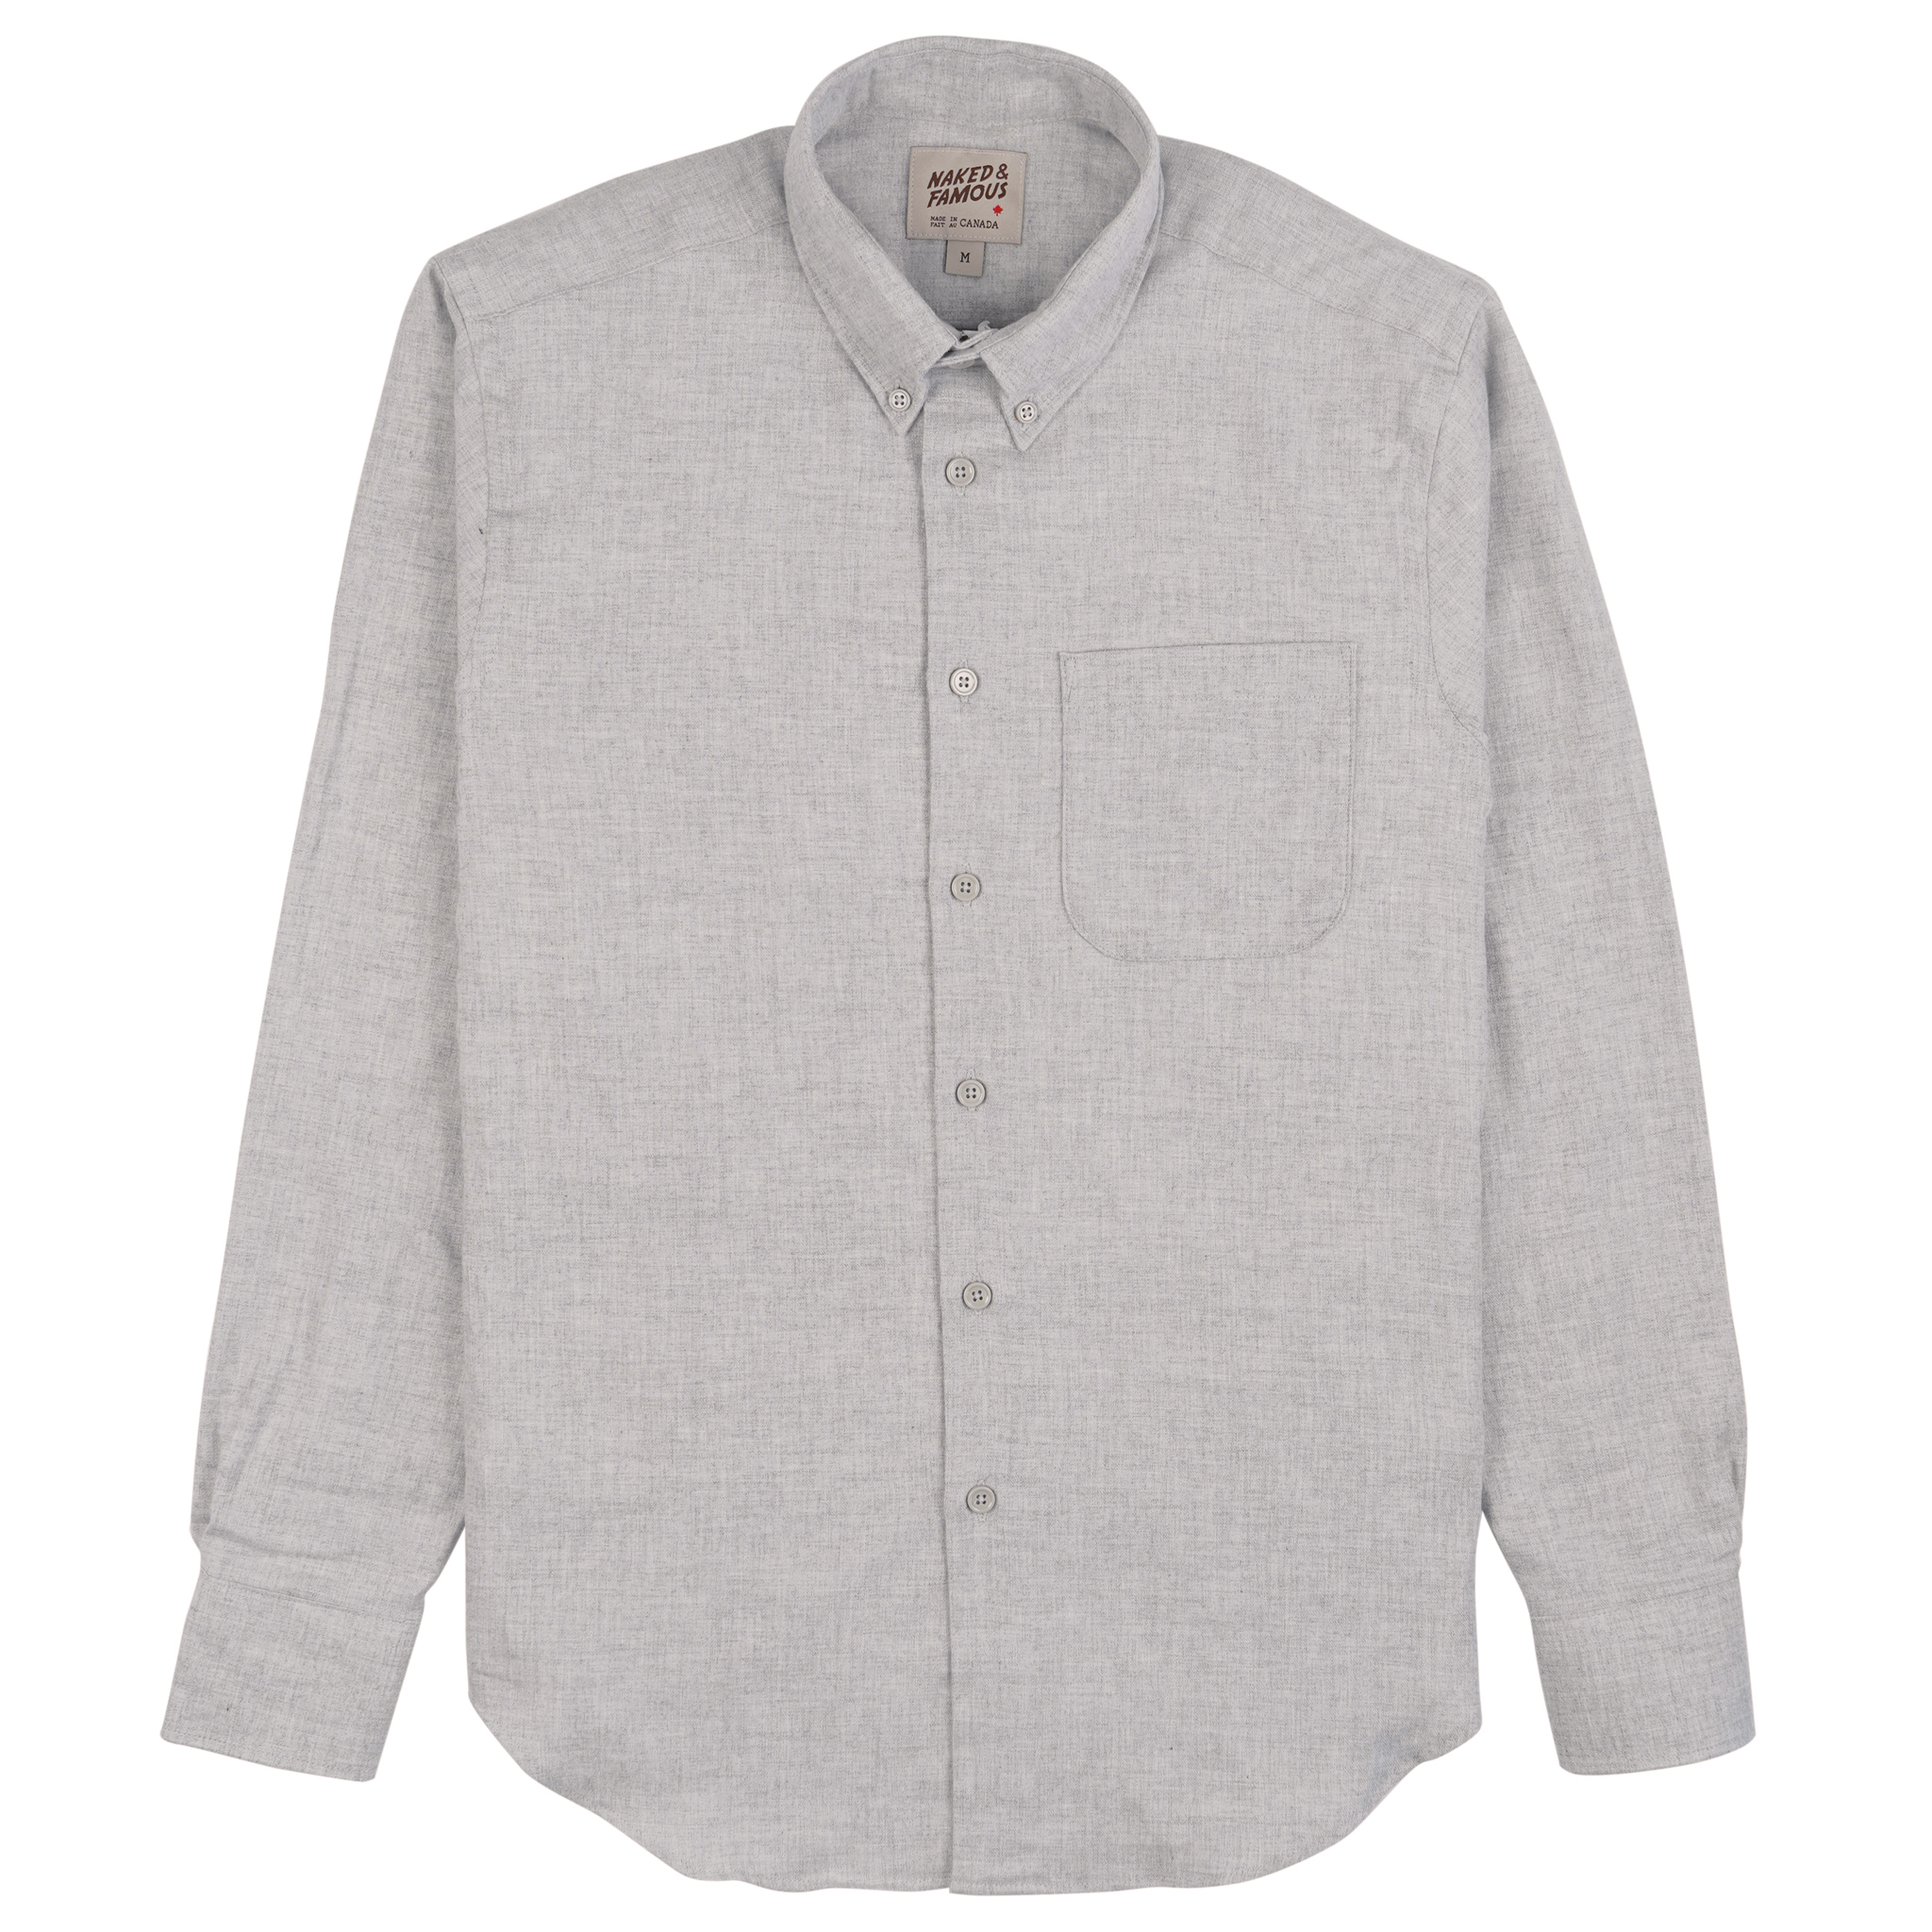 CLassic Flannel - Pale Grey - Easy Shirt